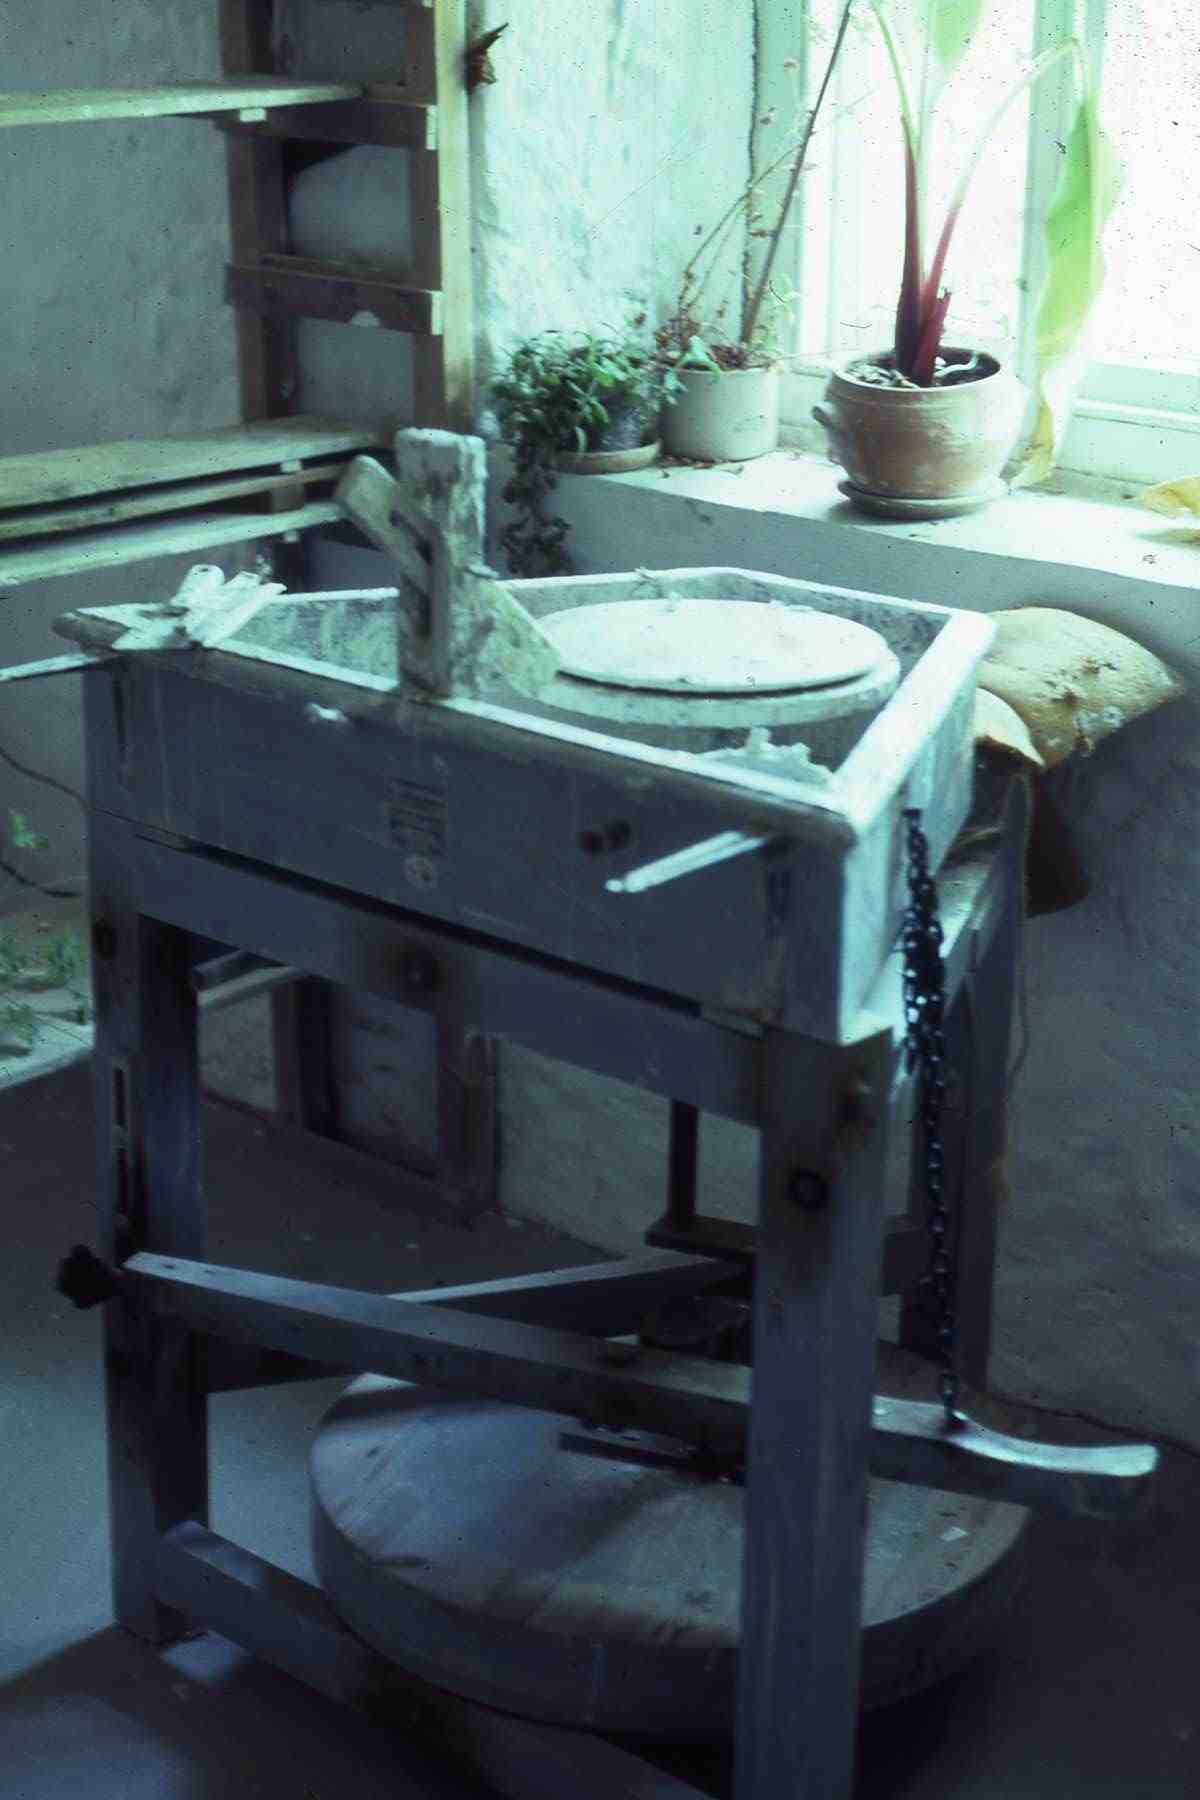 Potter's Wheel at Leach Pottery